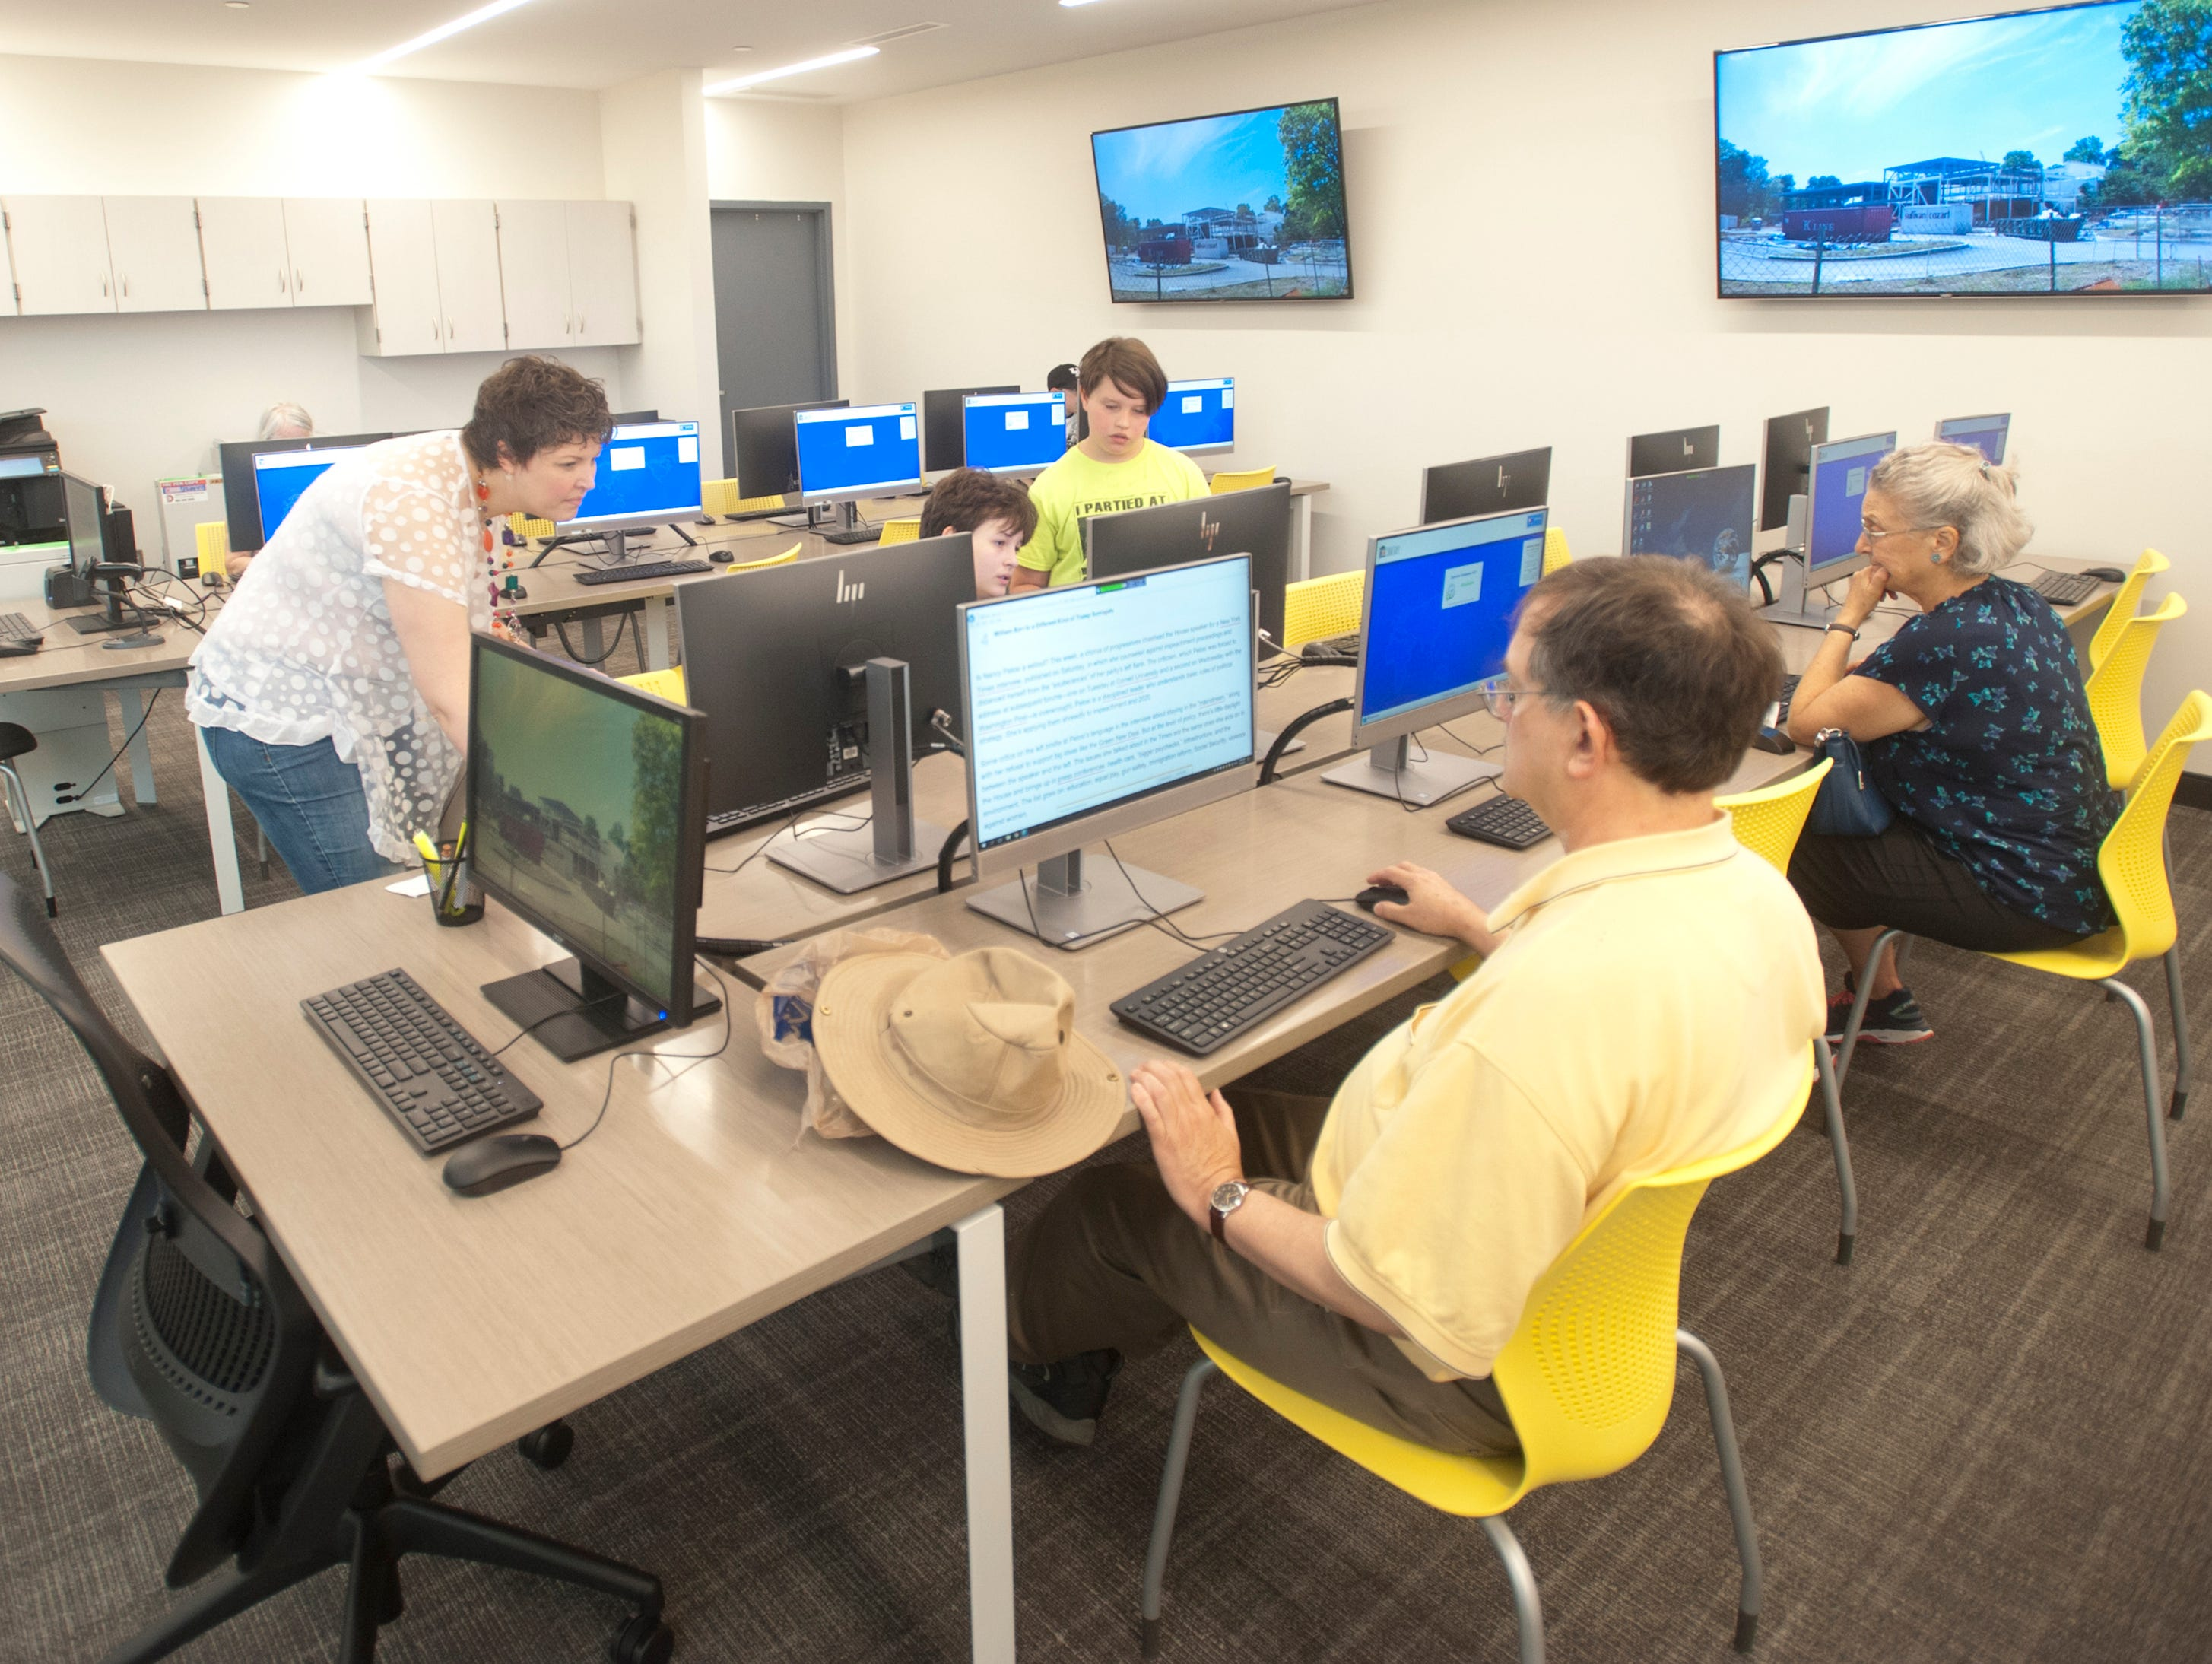 Patrons use the computer area of the library. May 9, 2019